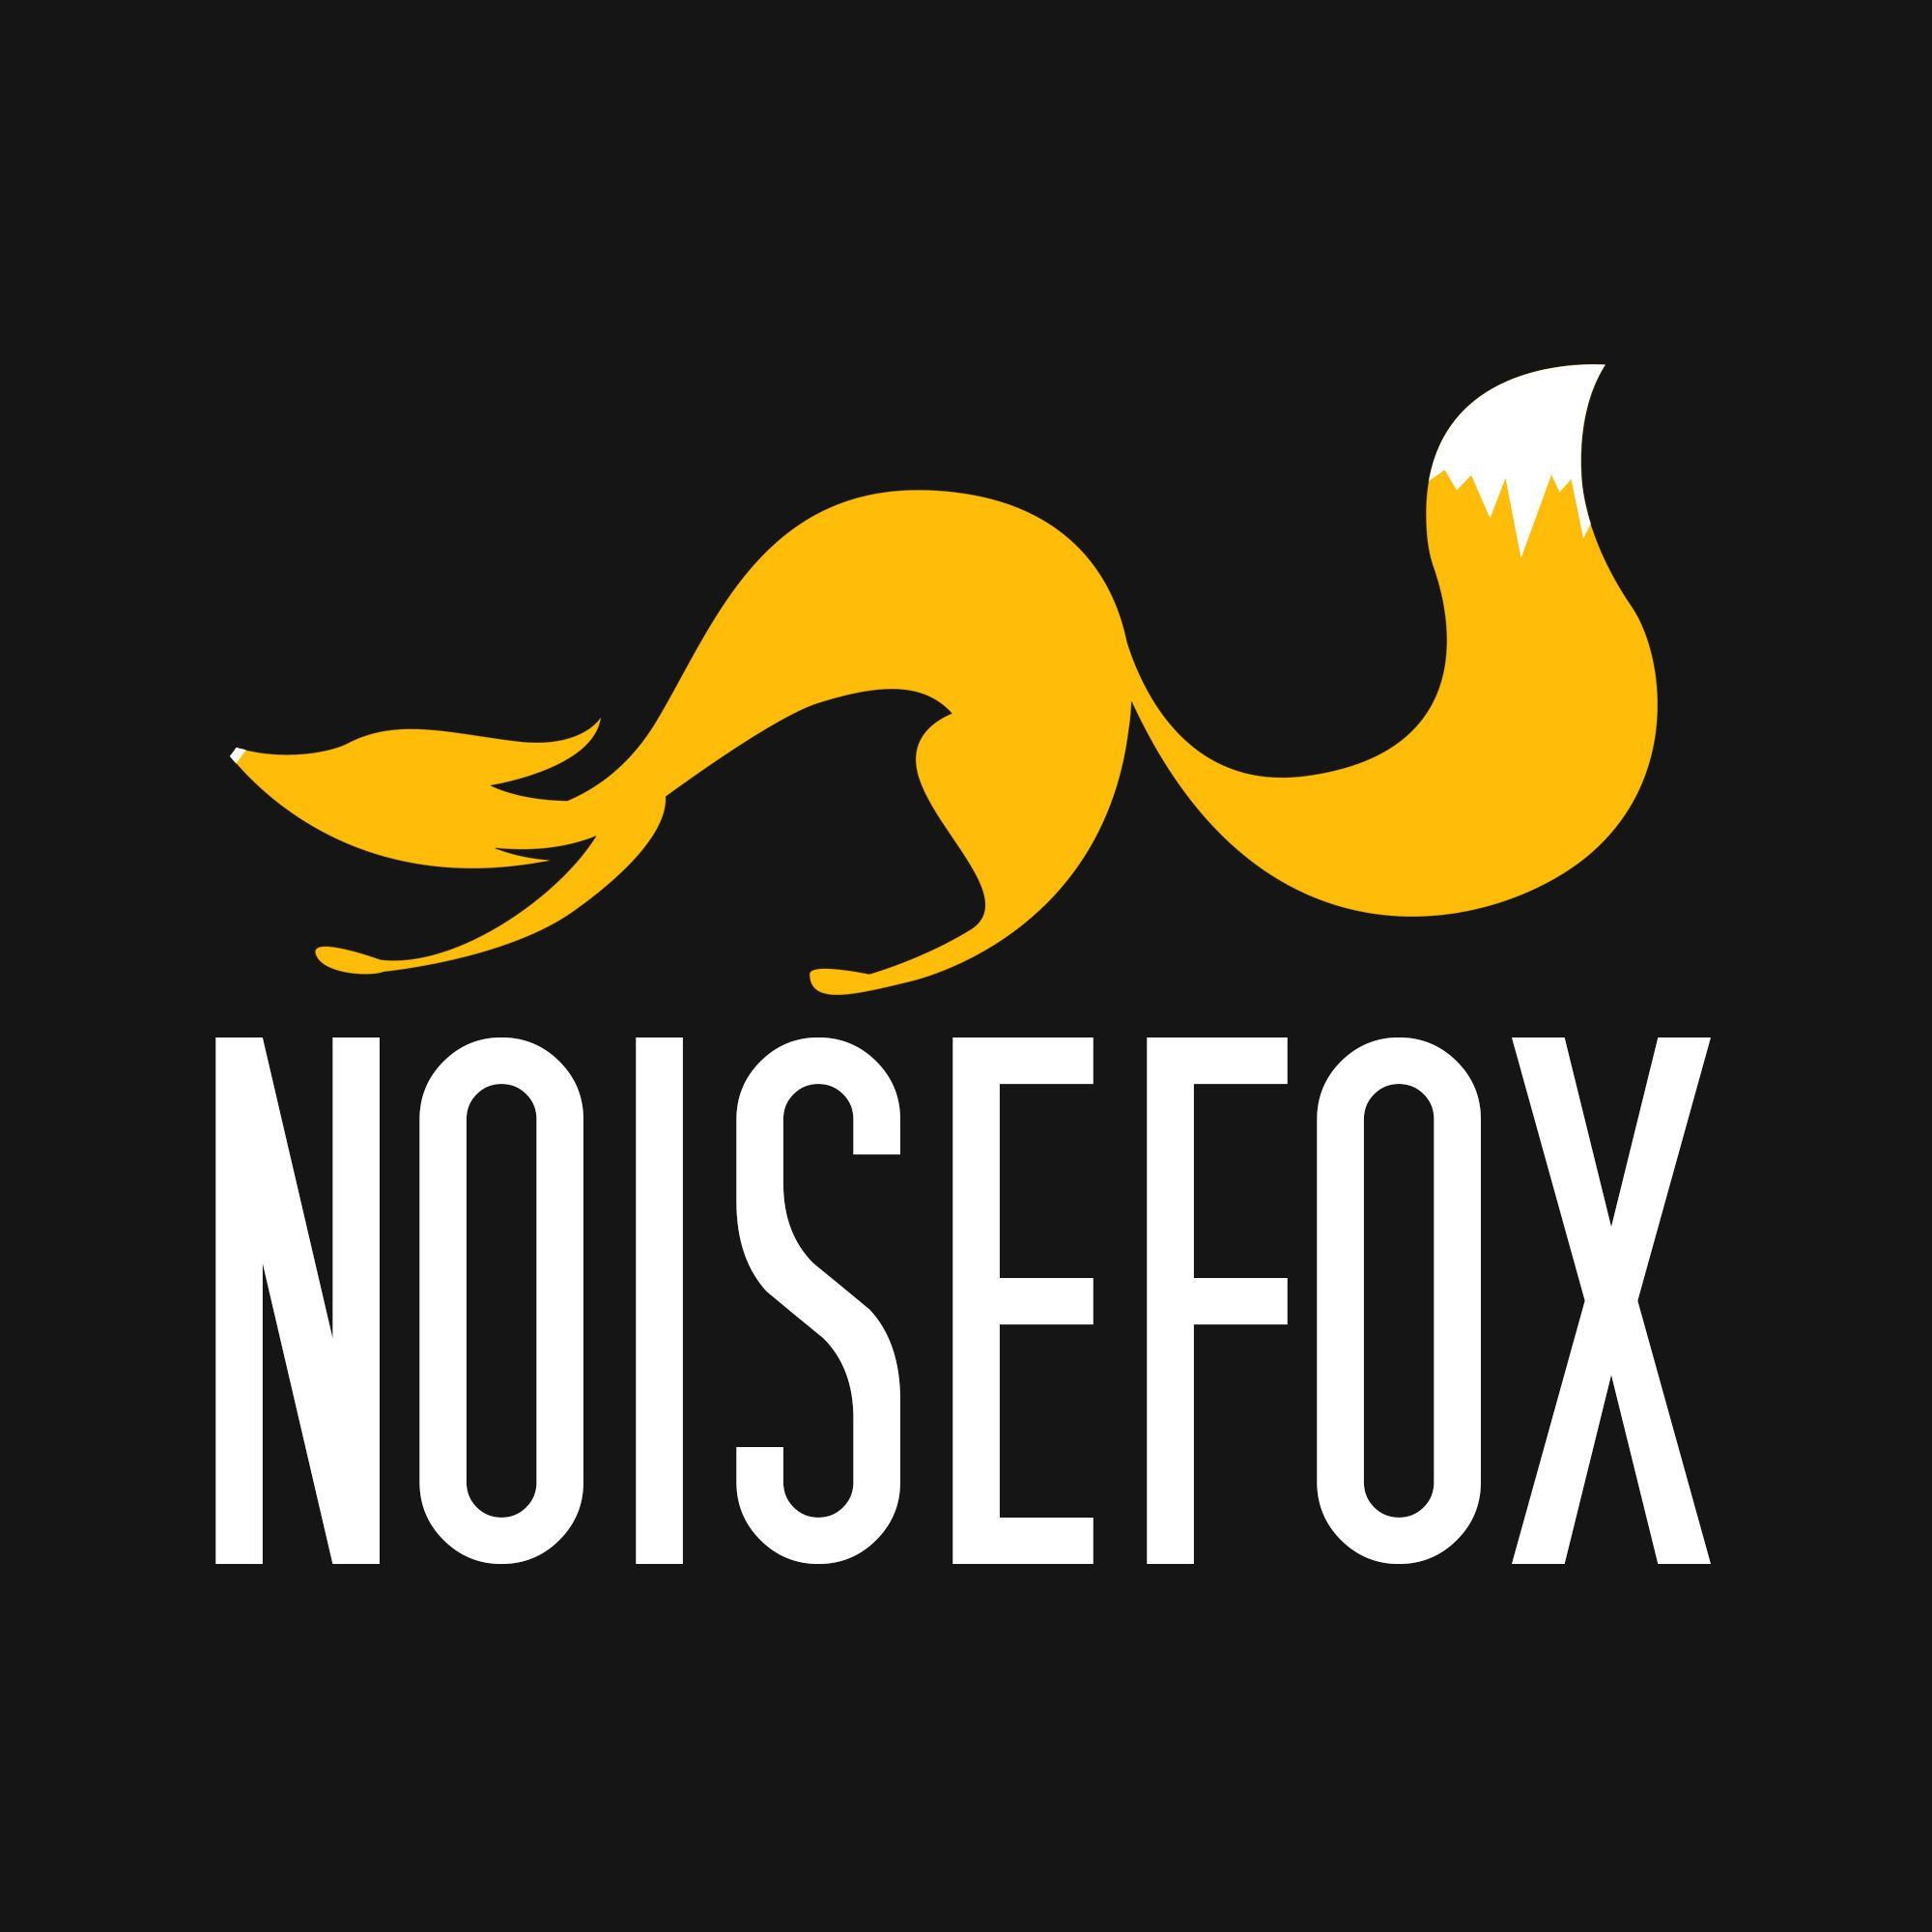 Noisefox Network